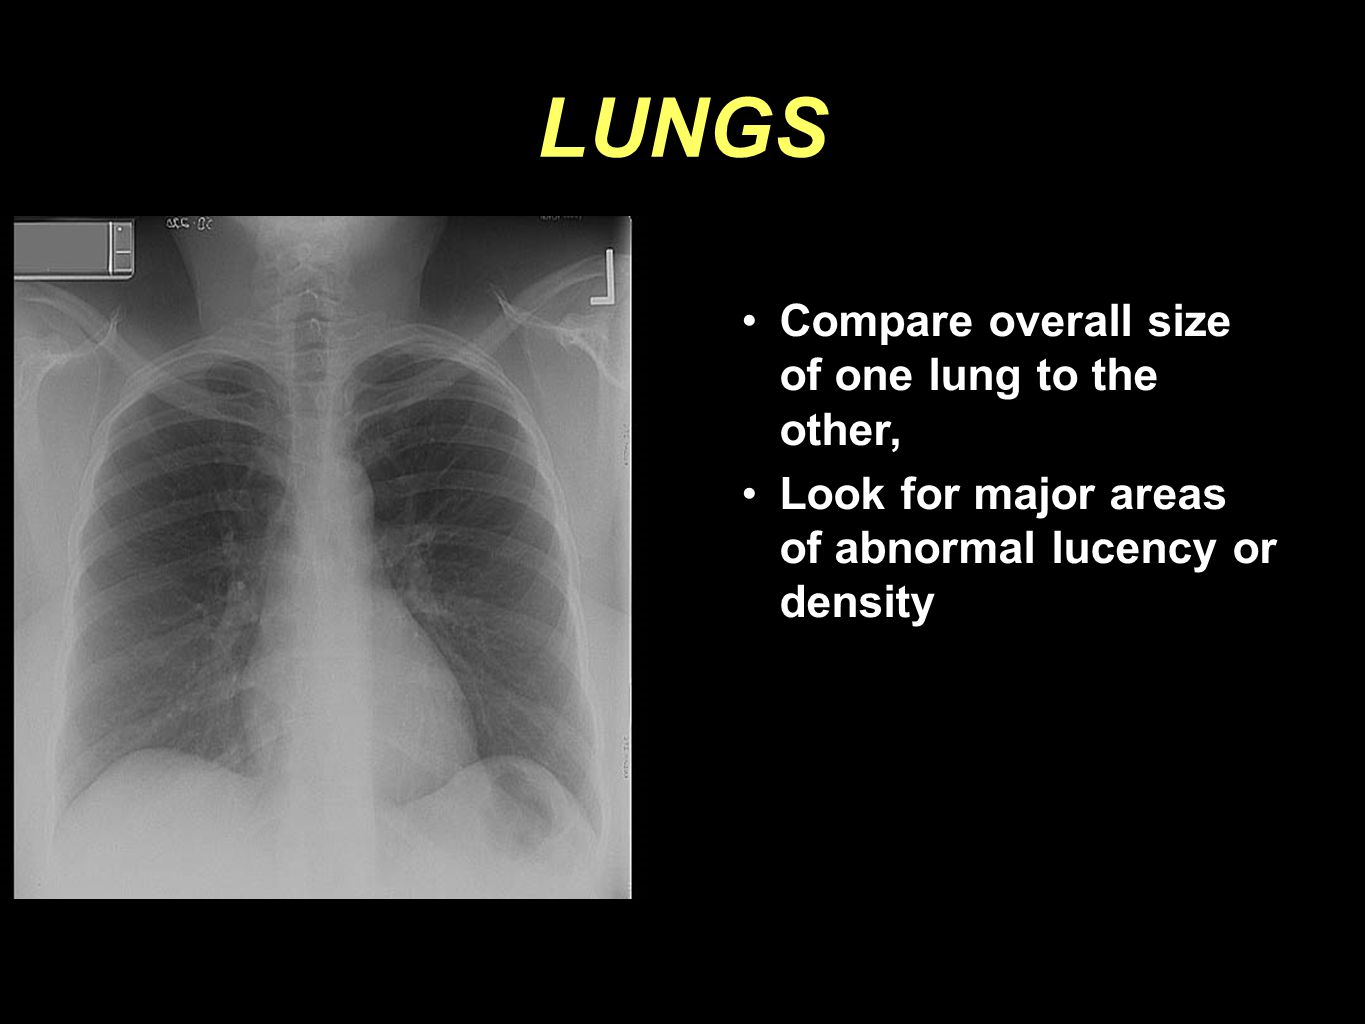 LUNGS Compare overall size of one lung to the other,